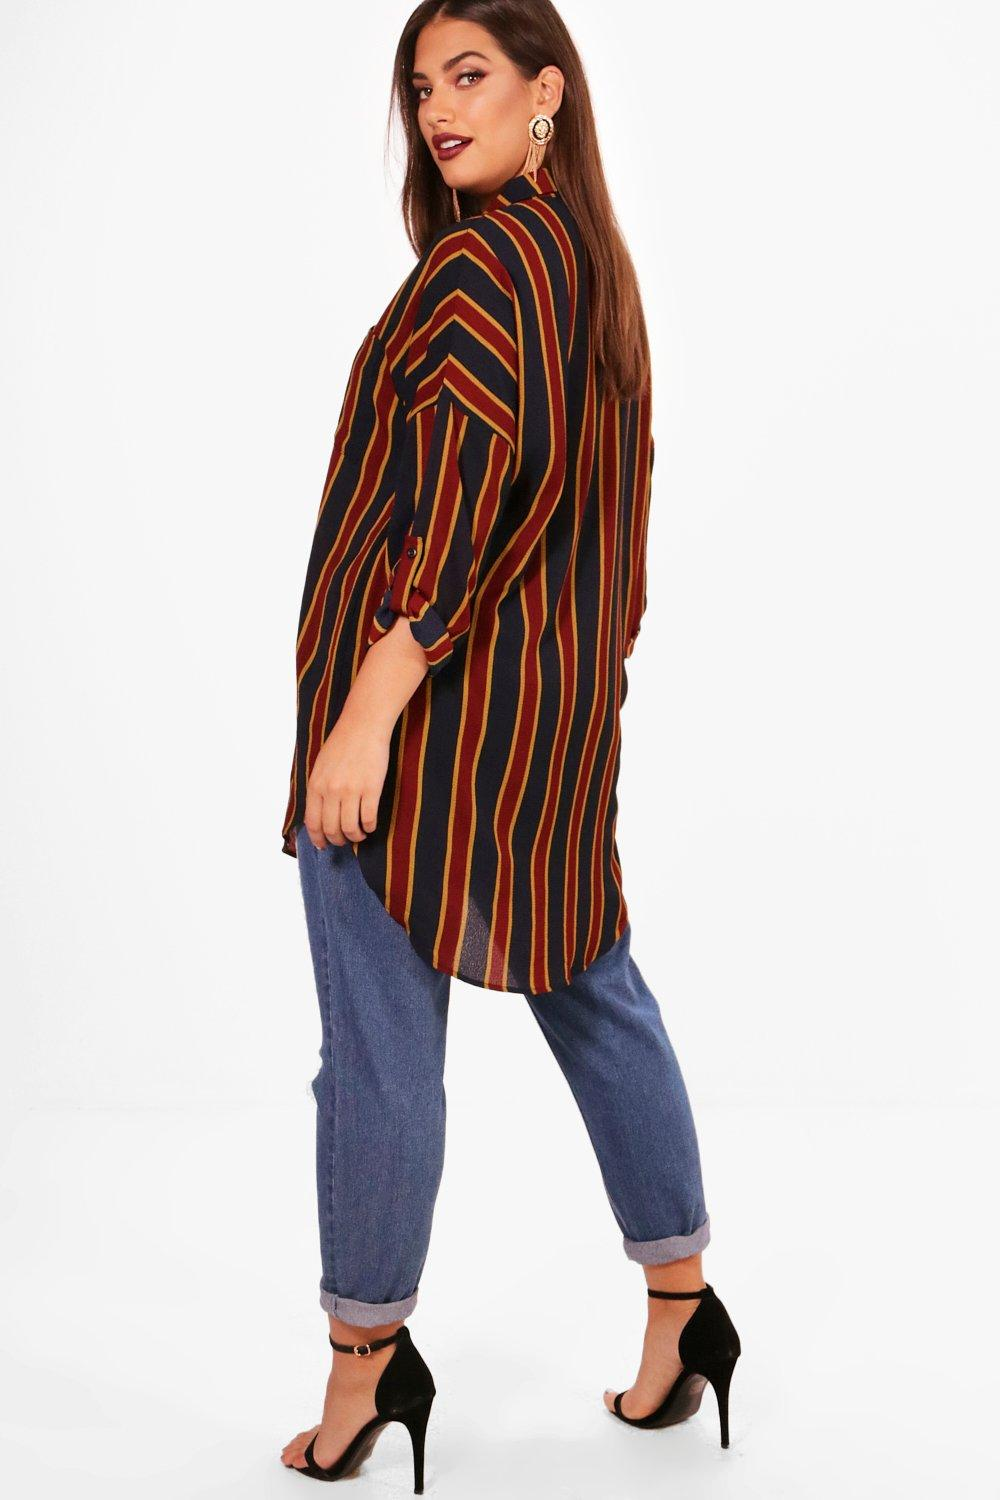 Plus Alexis Striped Oversized Shirt Tops - Woven Trends Fashion Collection